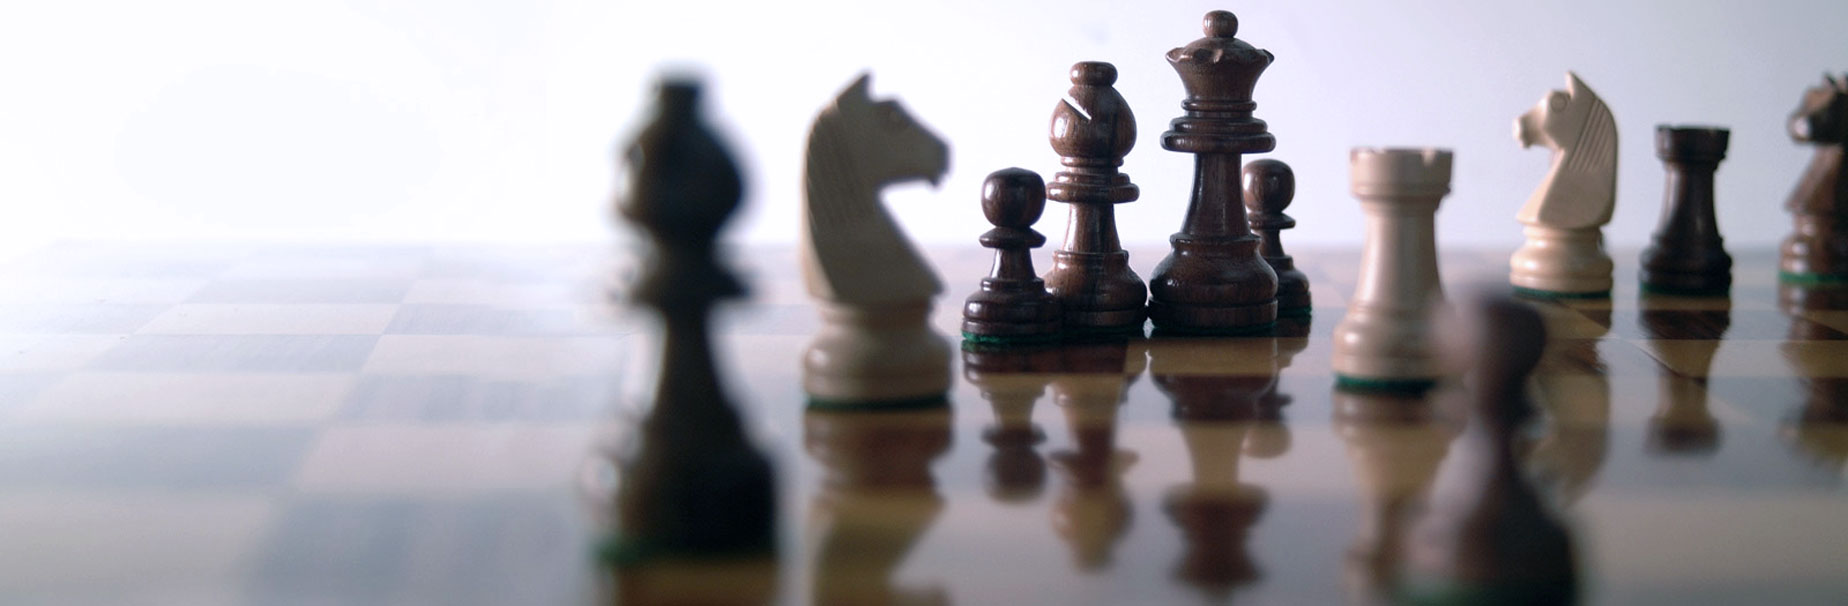 Chess piece showing investment management strategies